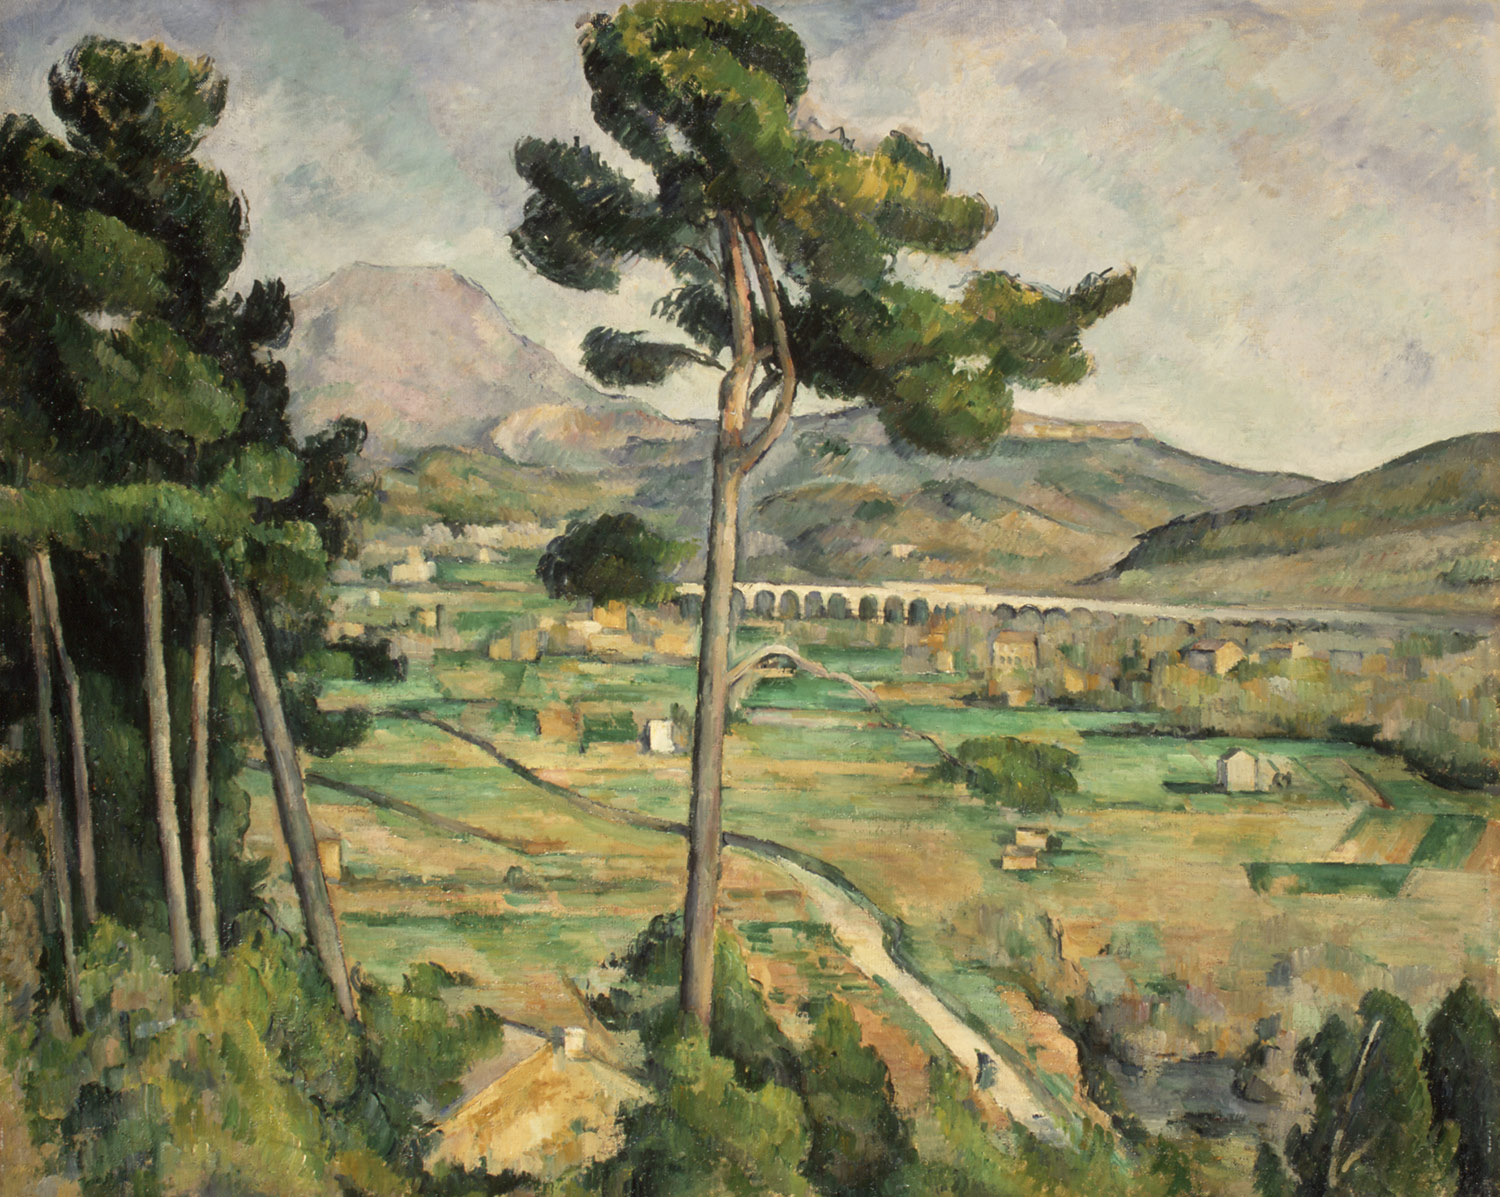 Mont Sainte-Victoire and the Viaduct of the Arc River Valley, 1882–85. Paul